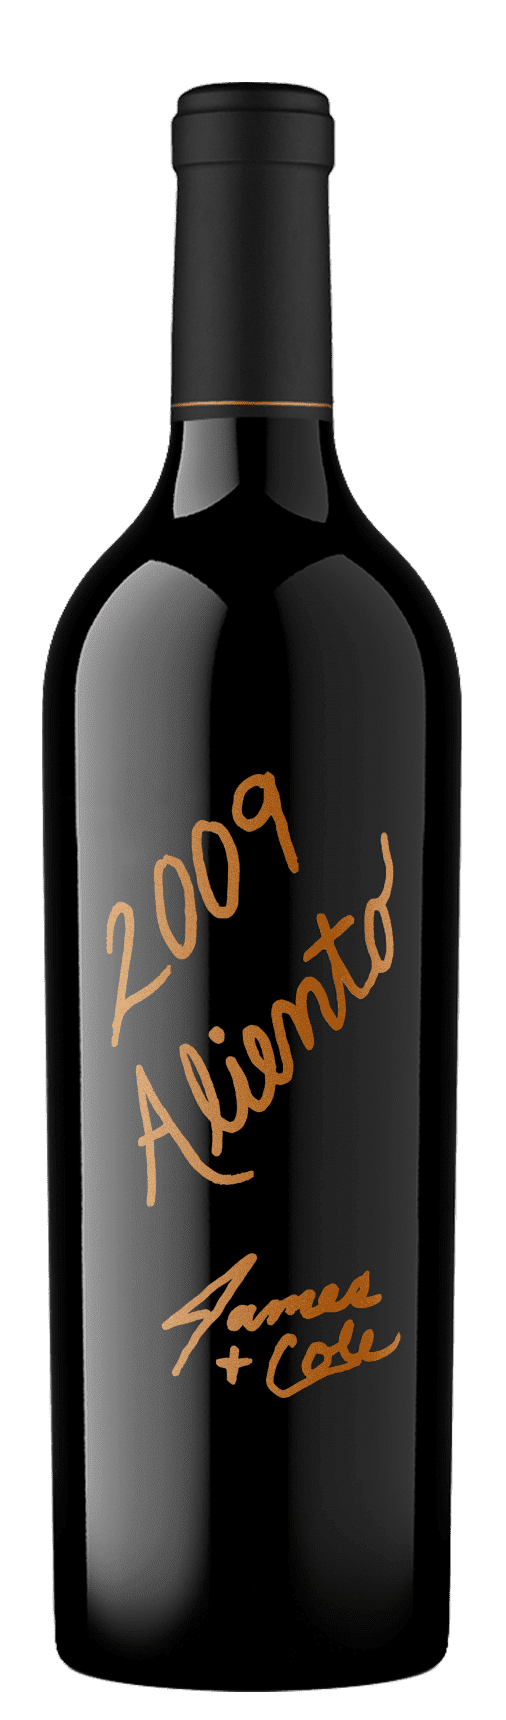 2009 Aliento Red Wine (Signed)